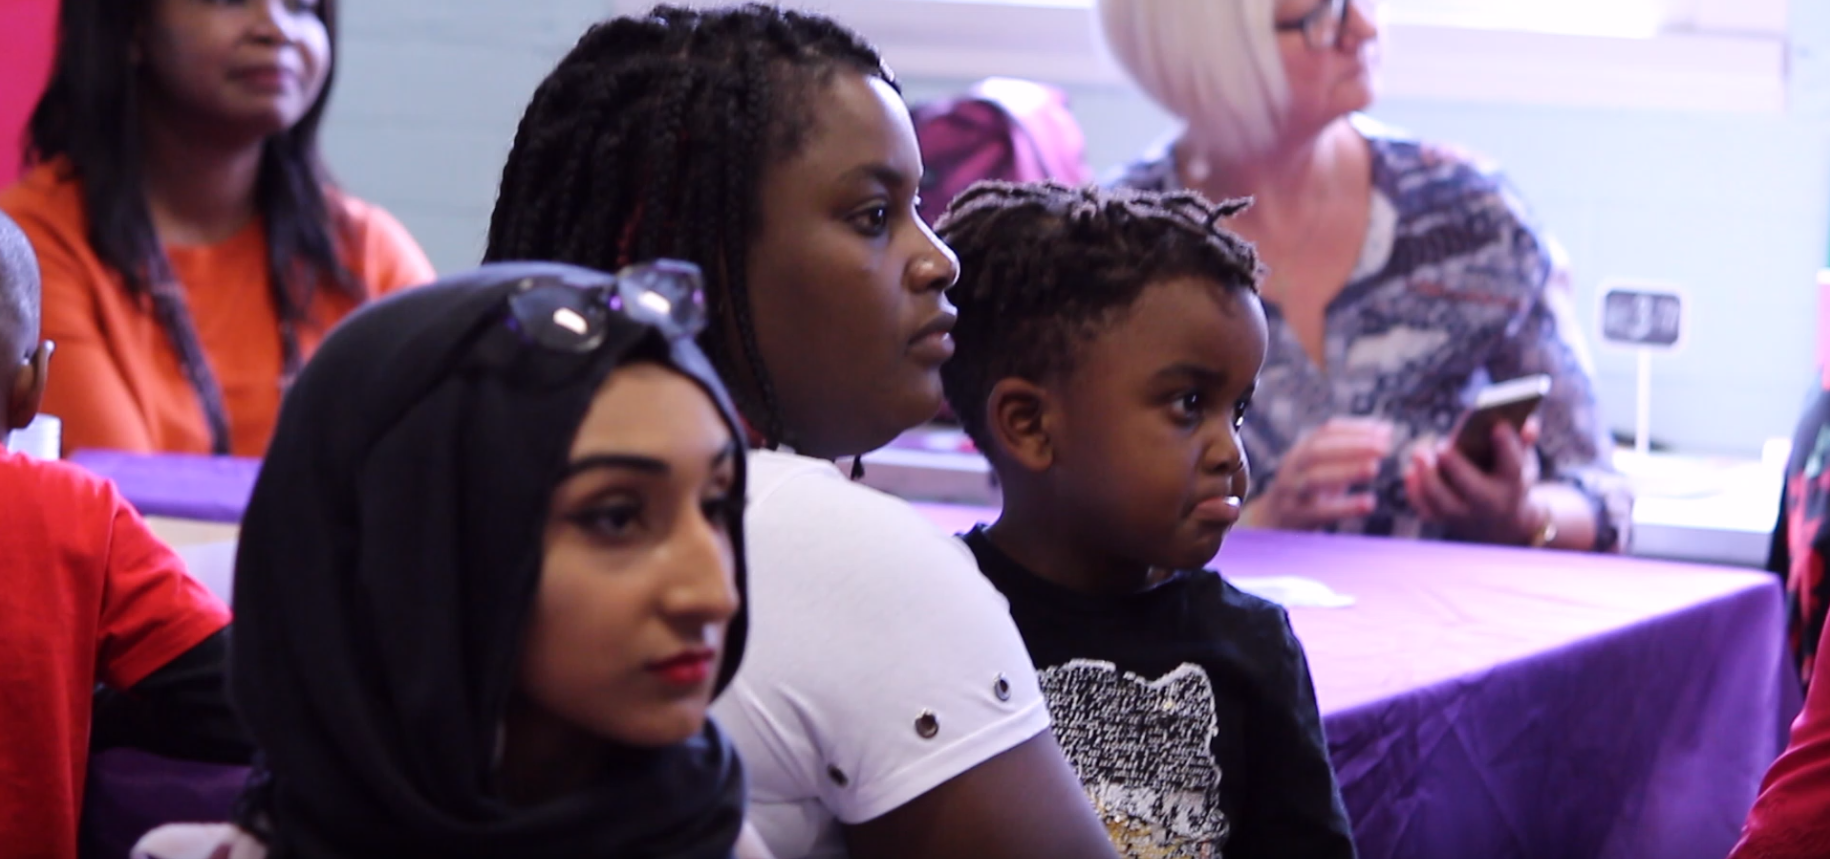 Women Today usually run workshops for BME women